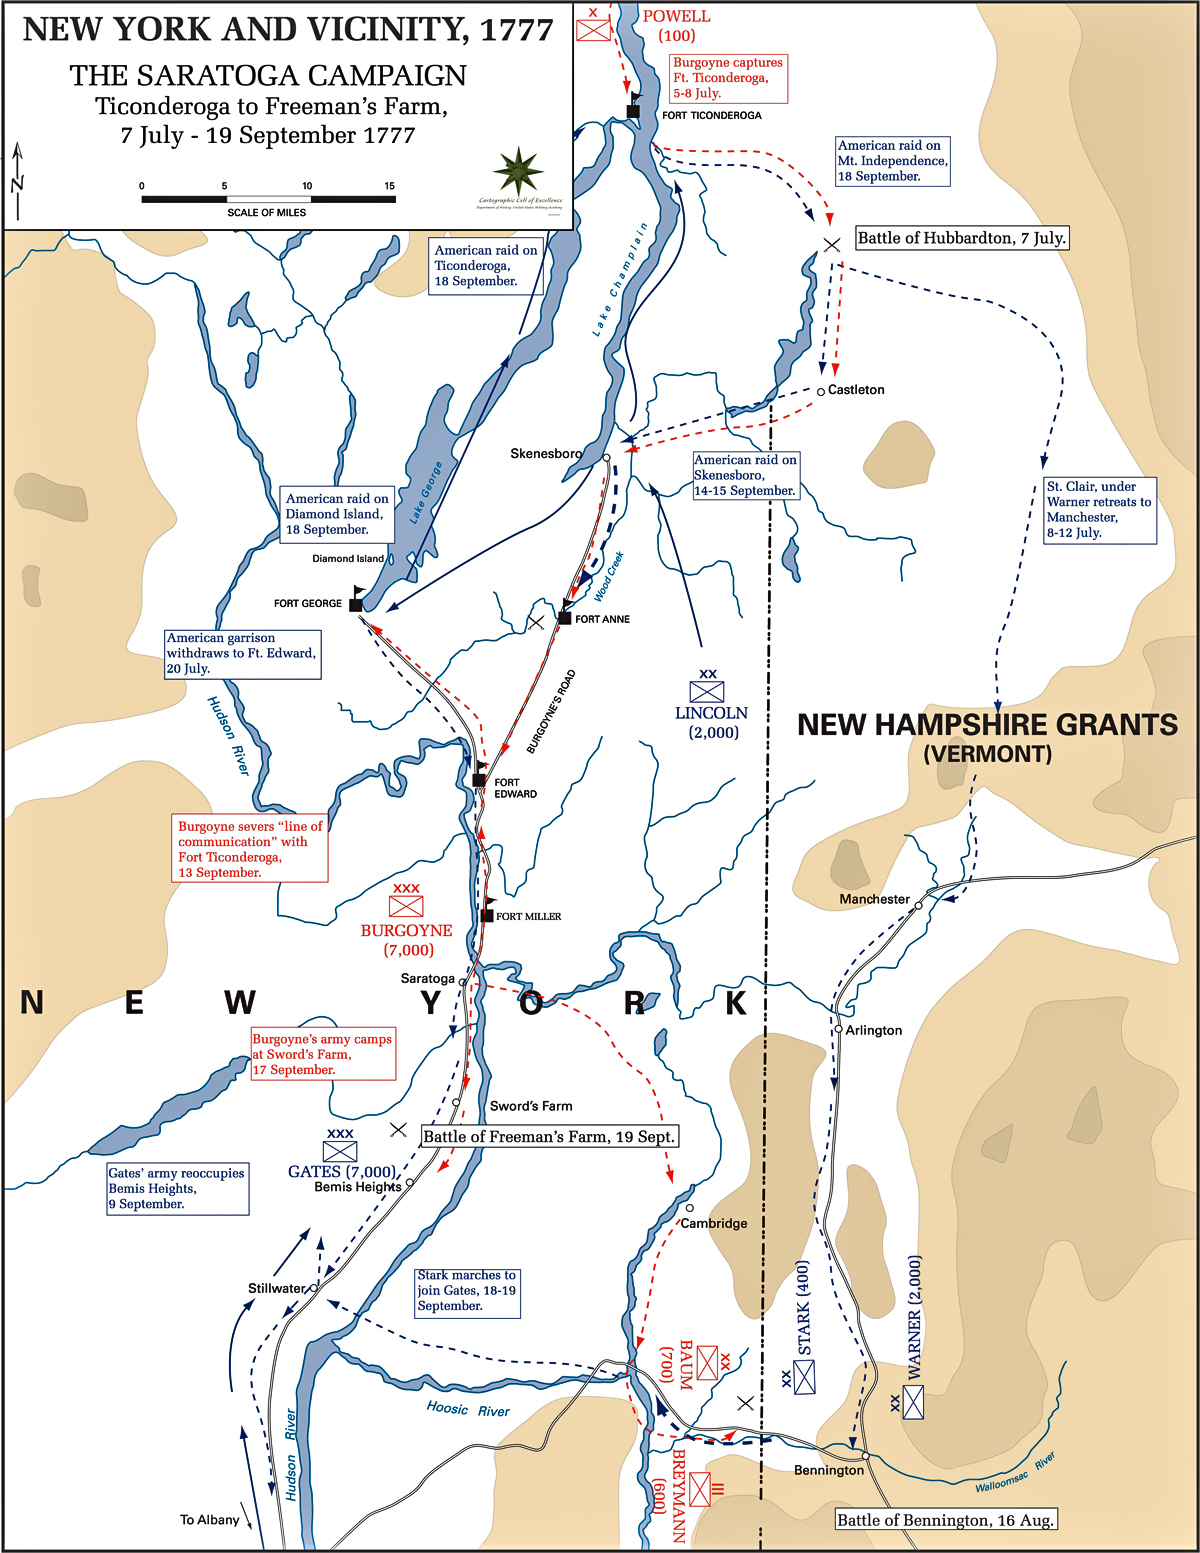 Map of the Saratoga Campaign 1777